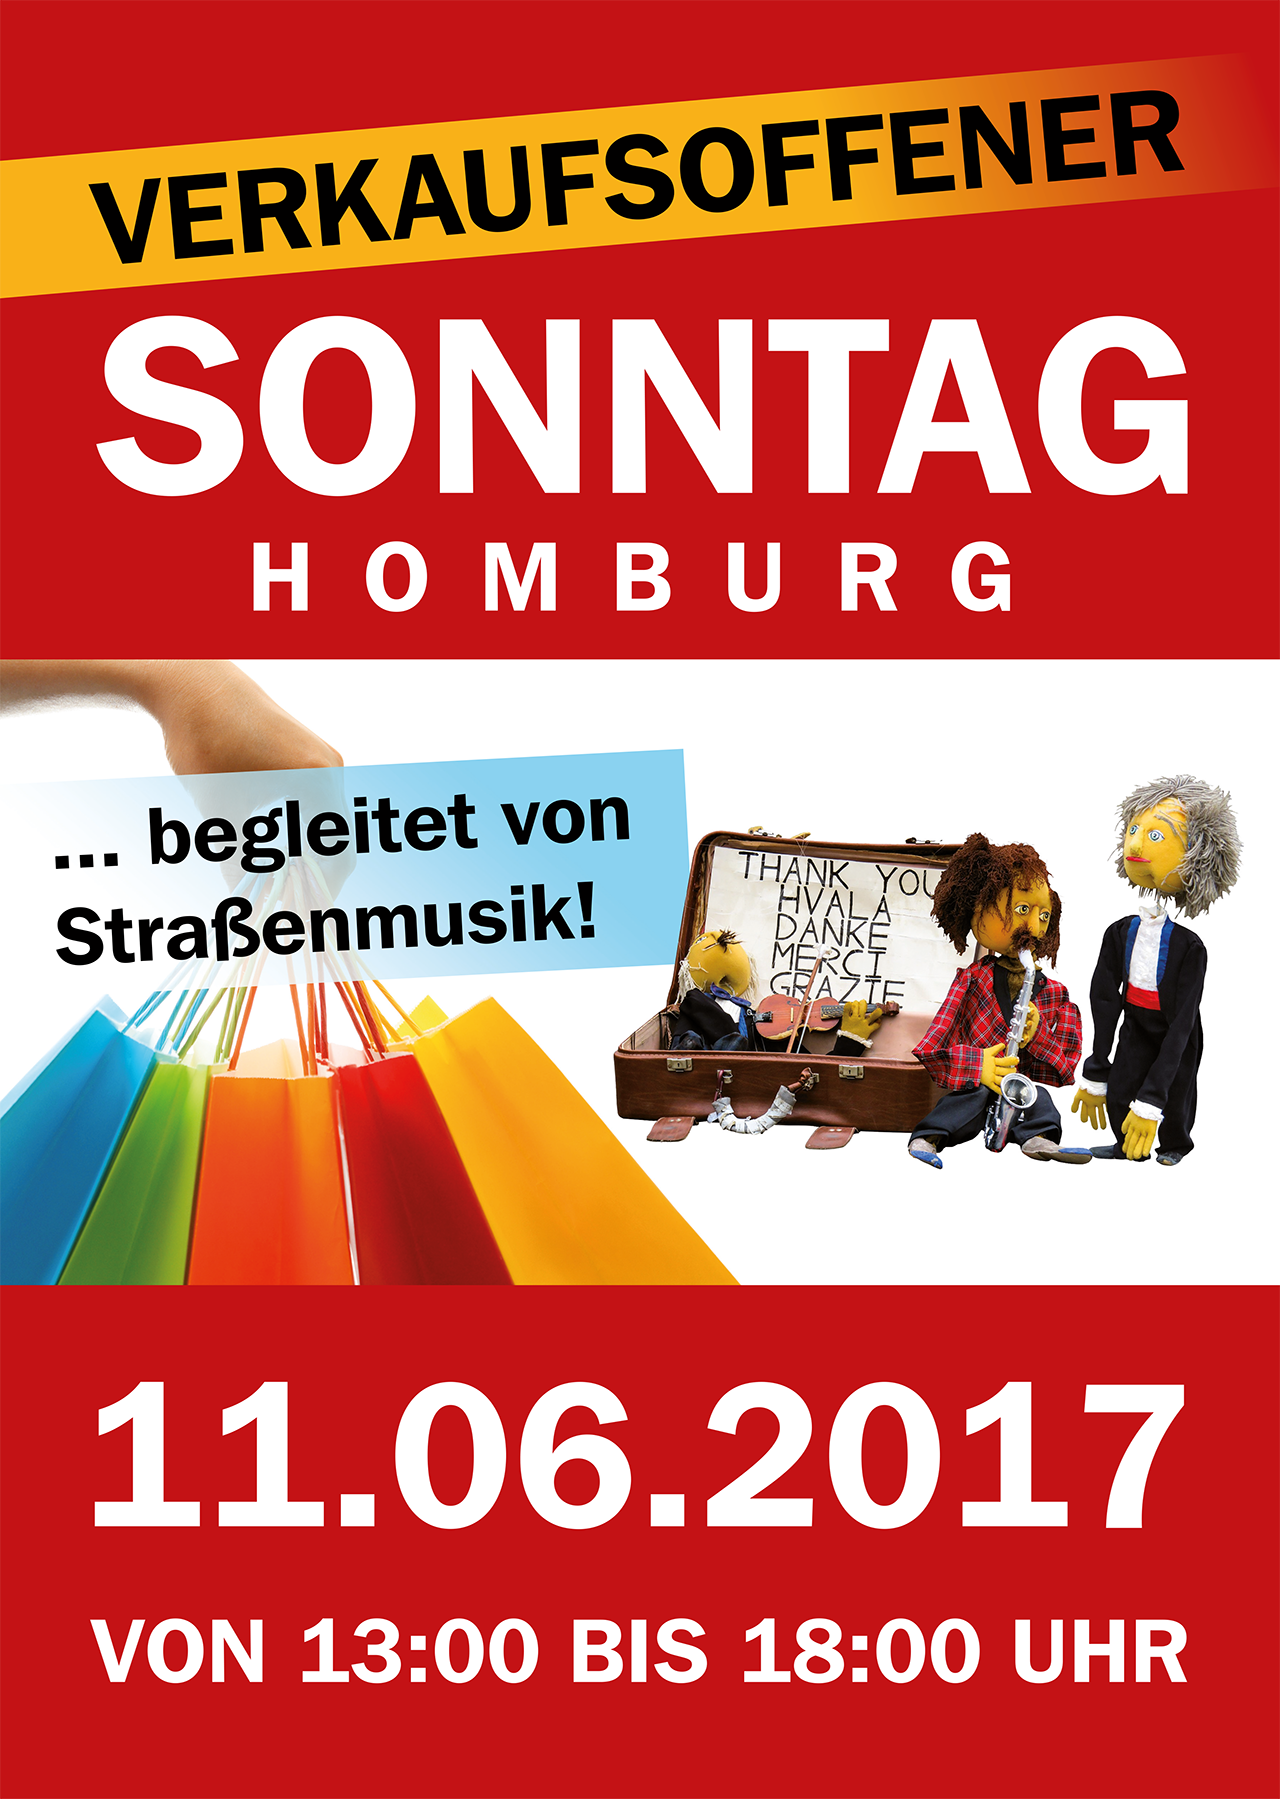 verkaufsoffener sonntag mit stra enmusik viele gesch fte in der homburger innenstadt ffnen am. Black Bedroom Furniture Sets. Home Design Ideas